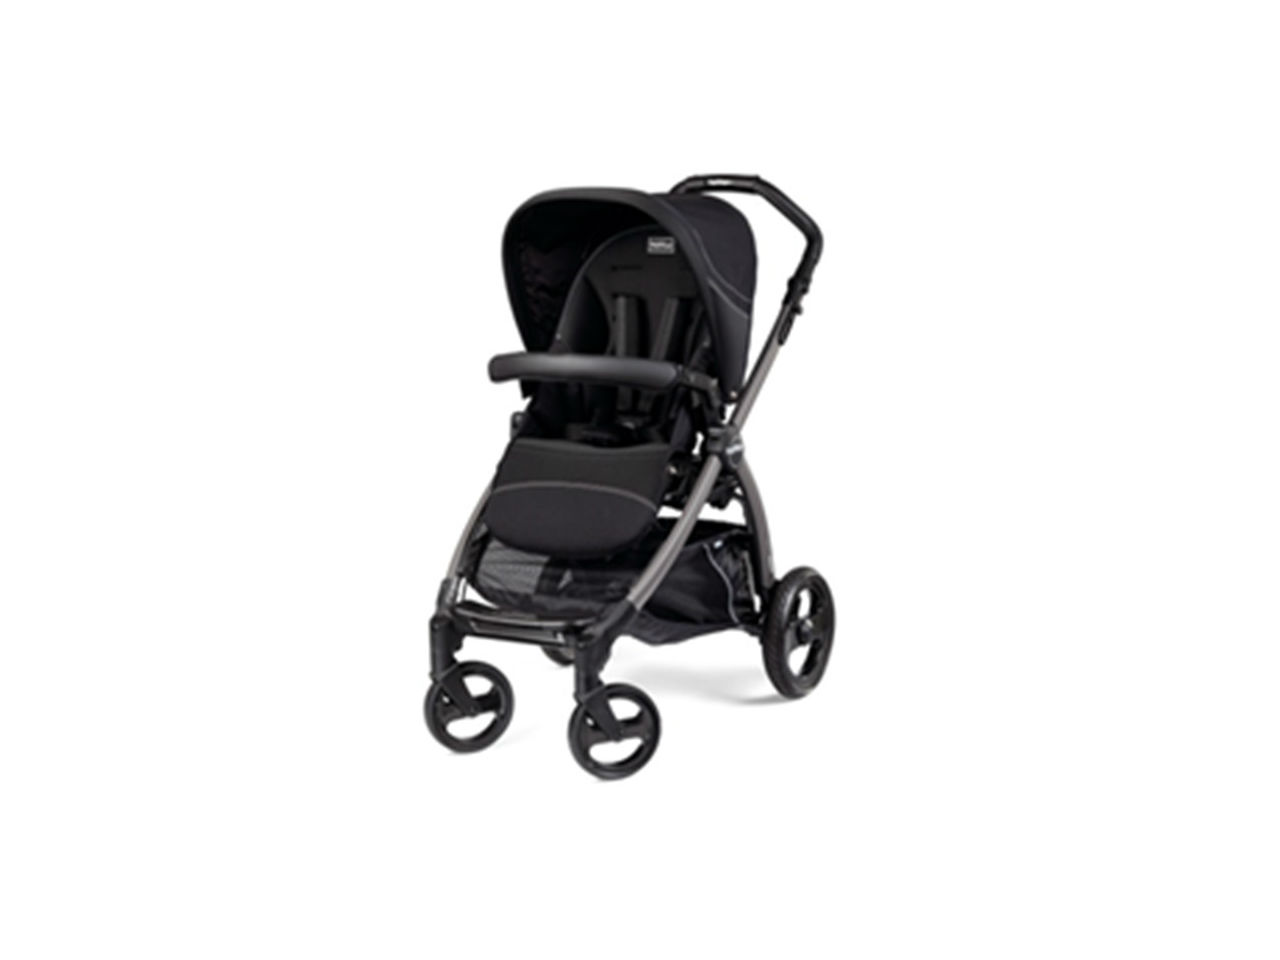 How To Fold Peg Perego Book Pop Up Stroller Recall Peg Perego Book Pop Up Stroller Today S Parent